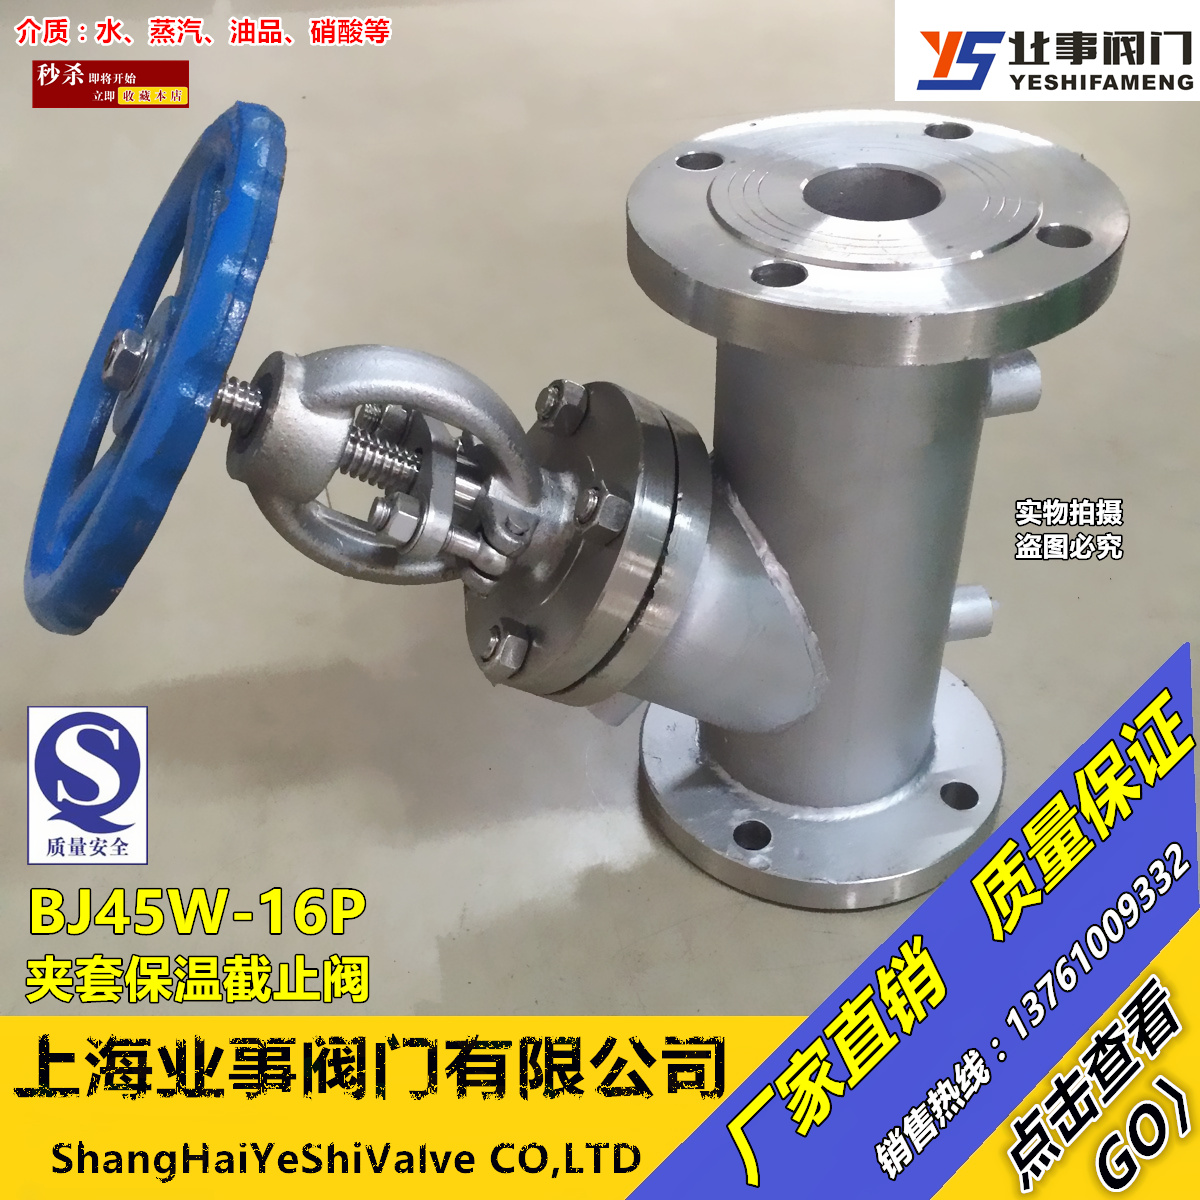 BJ45W-16P chemical corrosion resistant nitric acid acetic acid oil 304/316 stainless steel jacket insulation stop valve DN32